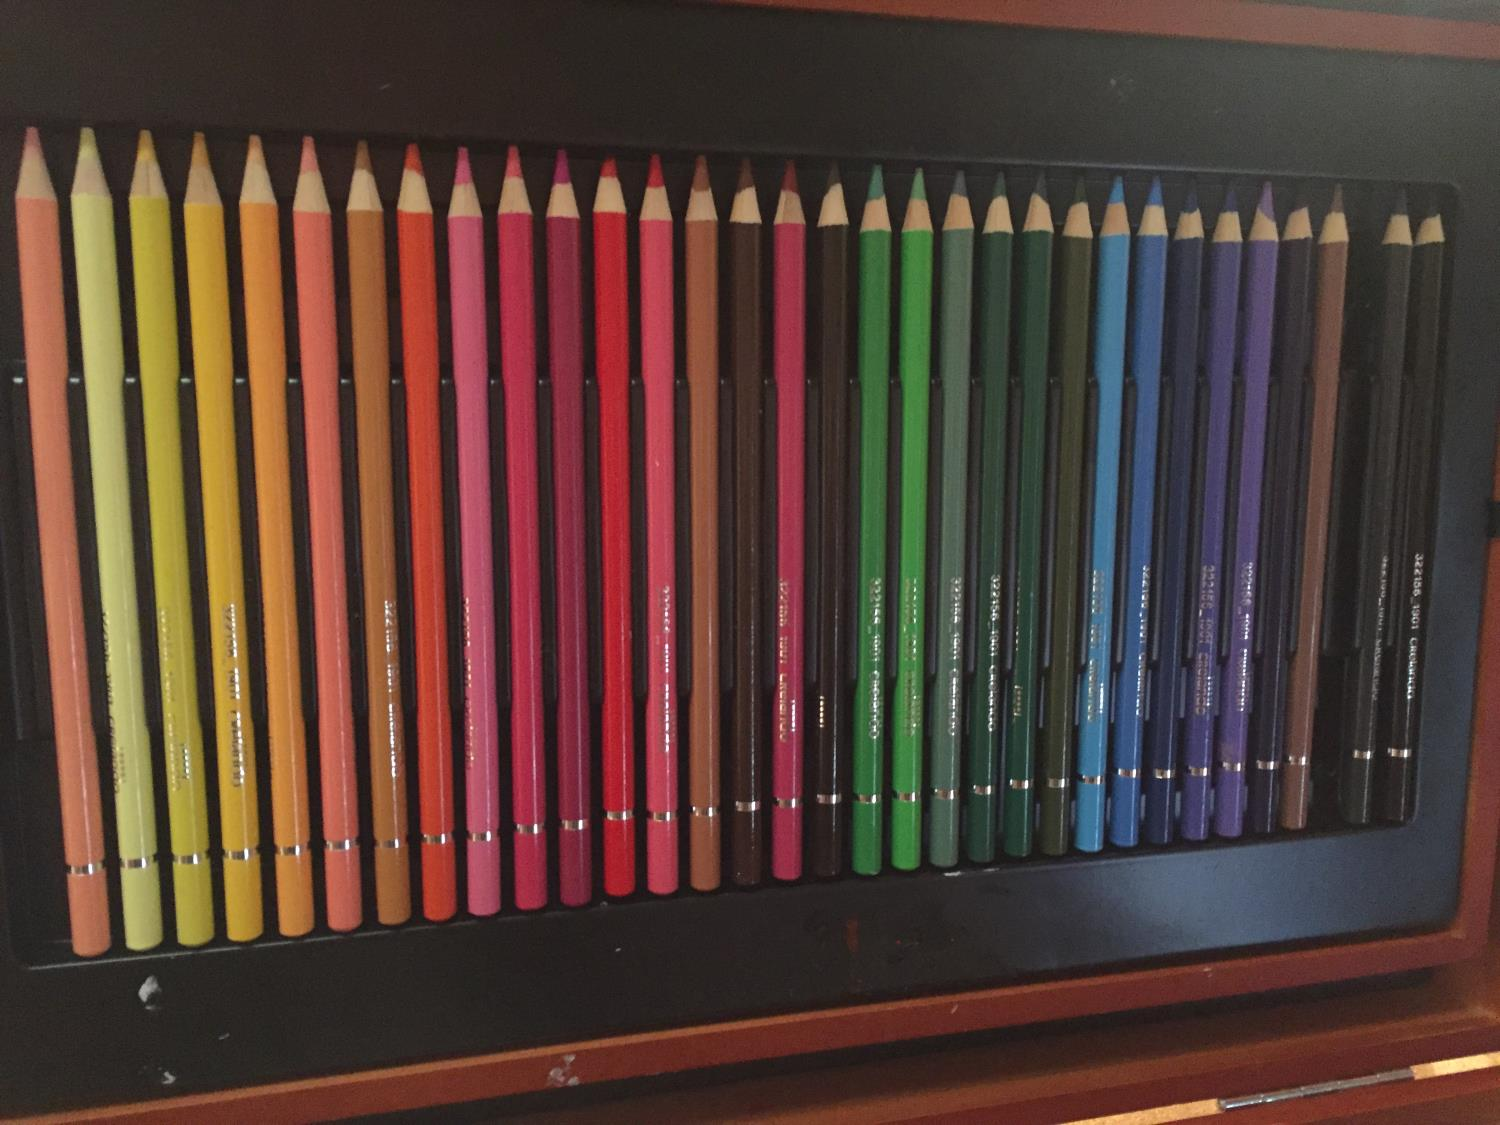 TWO CASES OF ART SUPPLIES TO INCLUDE FELT TIPS, PENCILS, OIL PAINTS ETC - Image 7 of 12